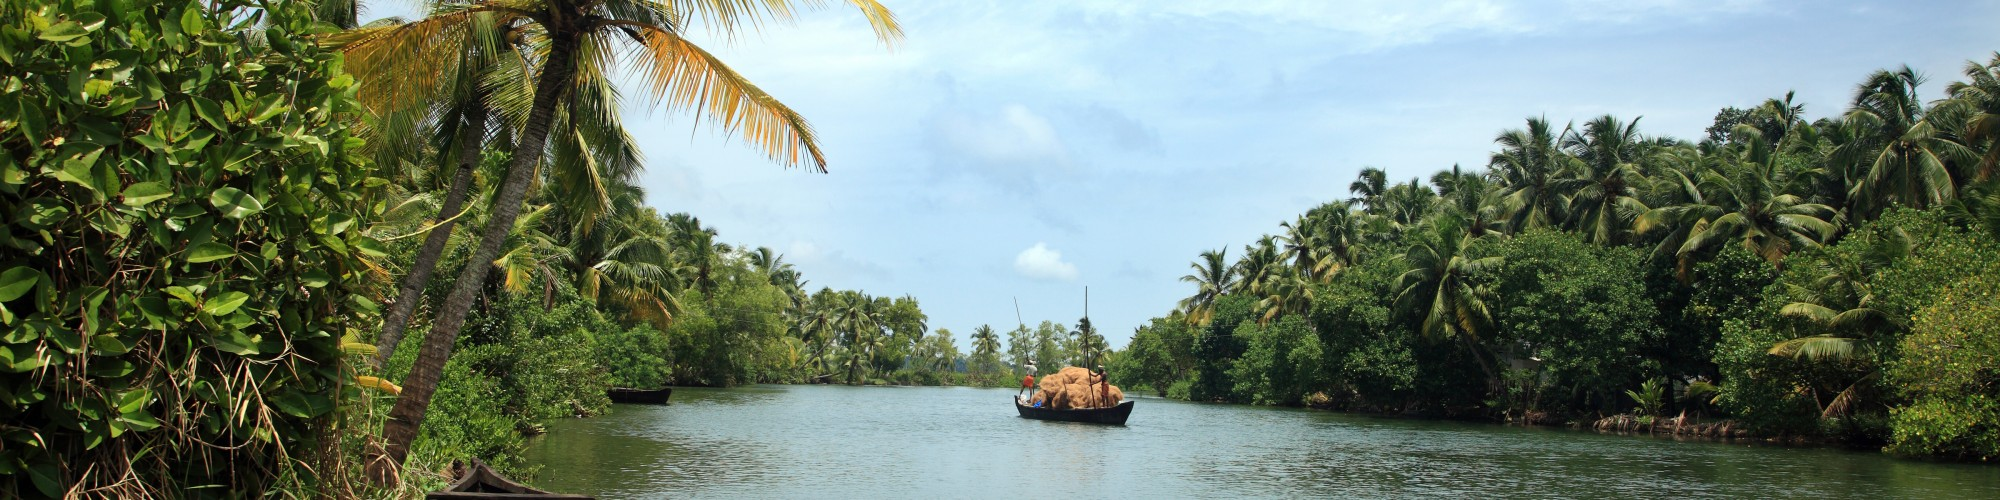 Backwater scenery from Kerala, India.